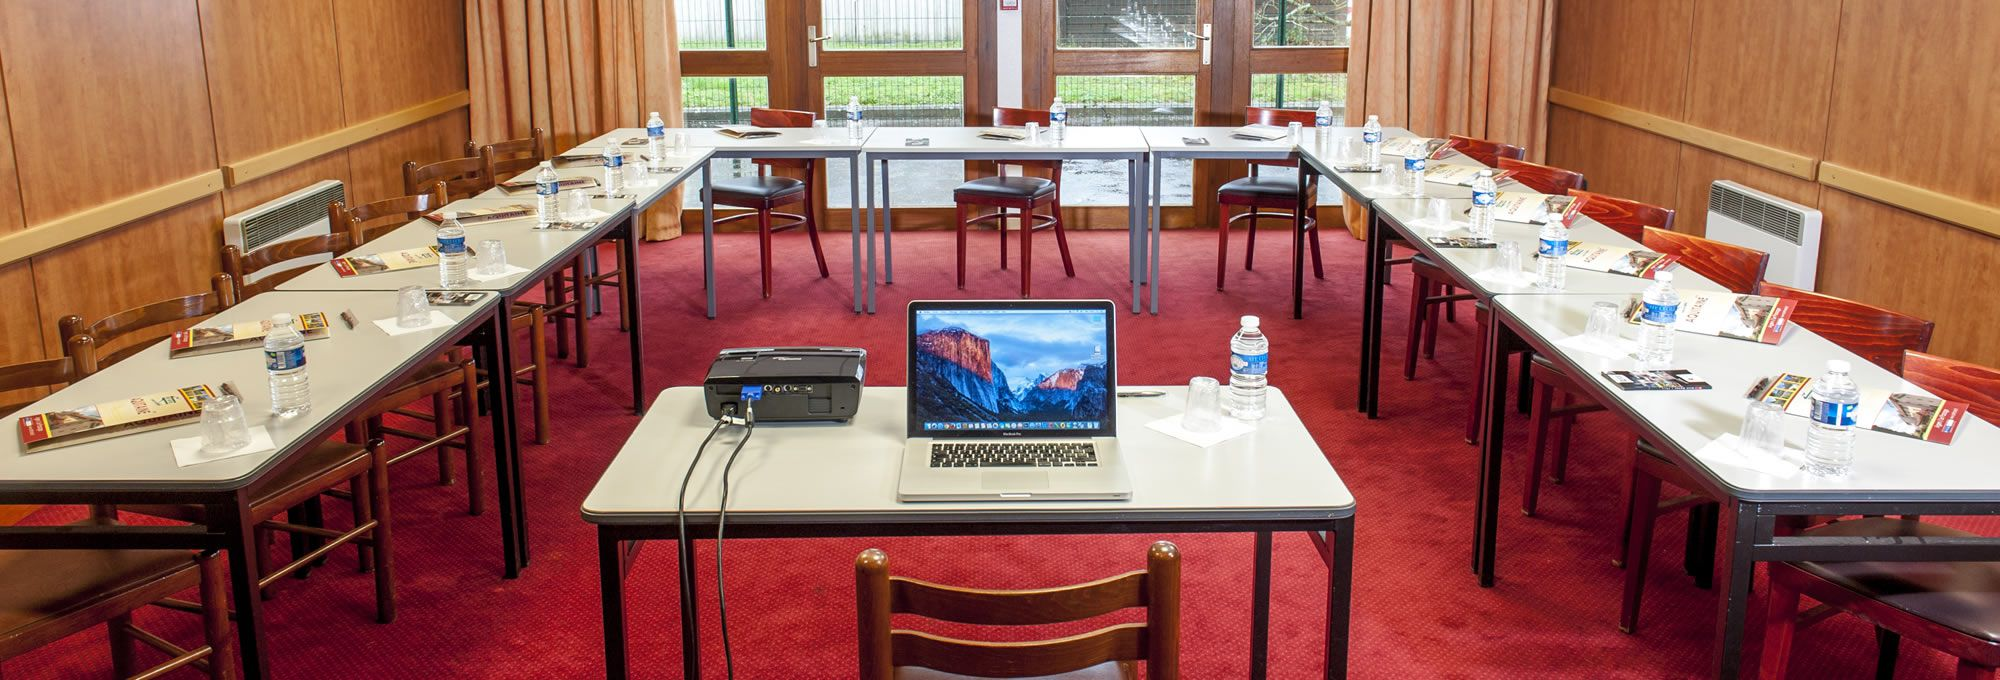 Our 2 air-conditioned seminar rooms